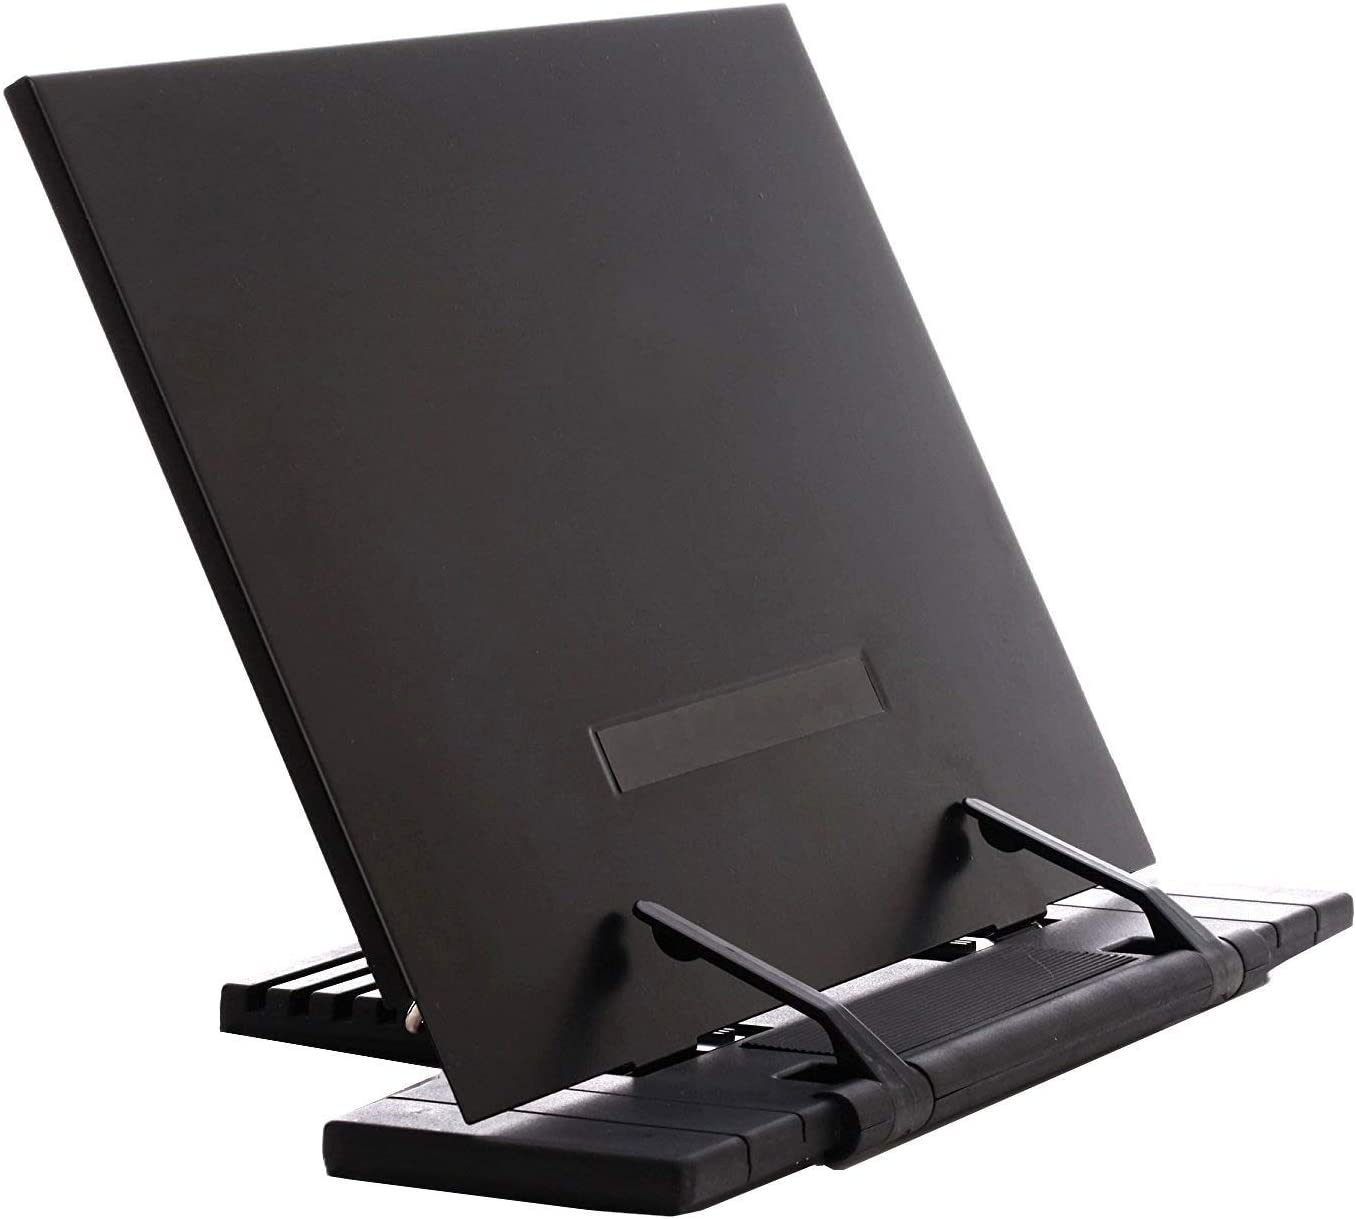 Adjustable Portable Steel Ipad Document Book Stand Frame Reading Desk Holder Office Accessories - Black